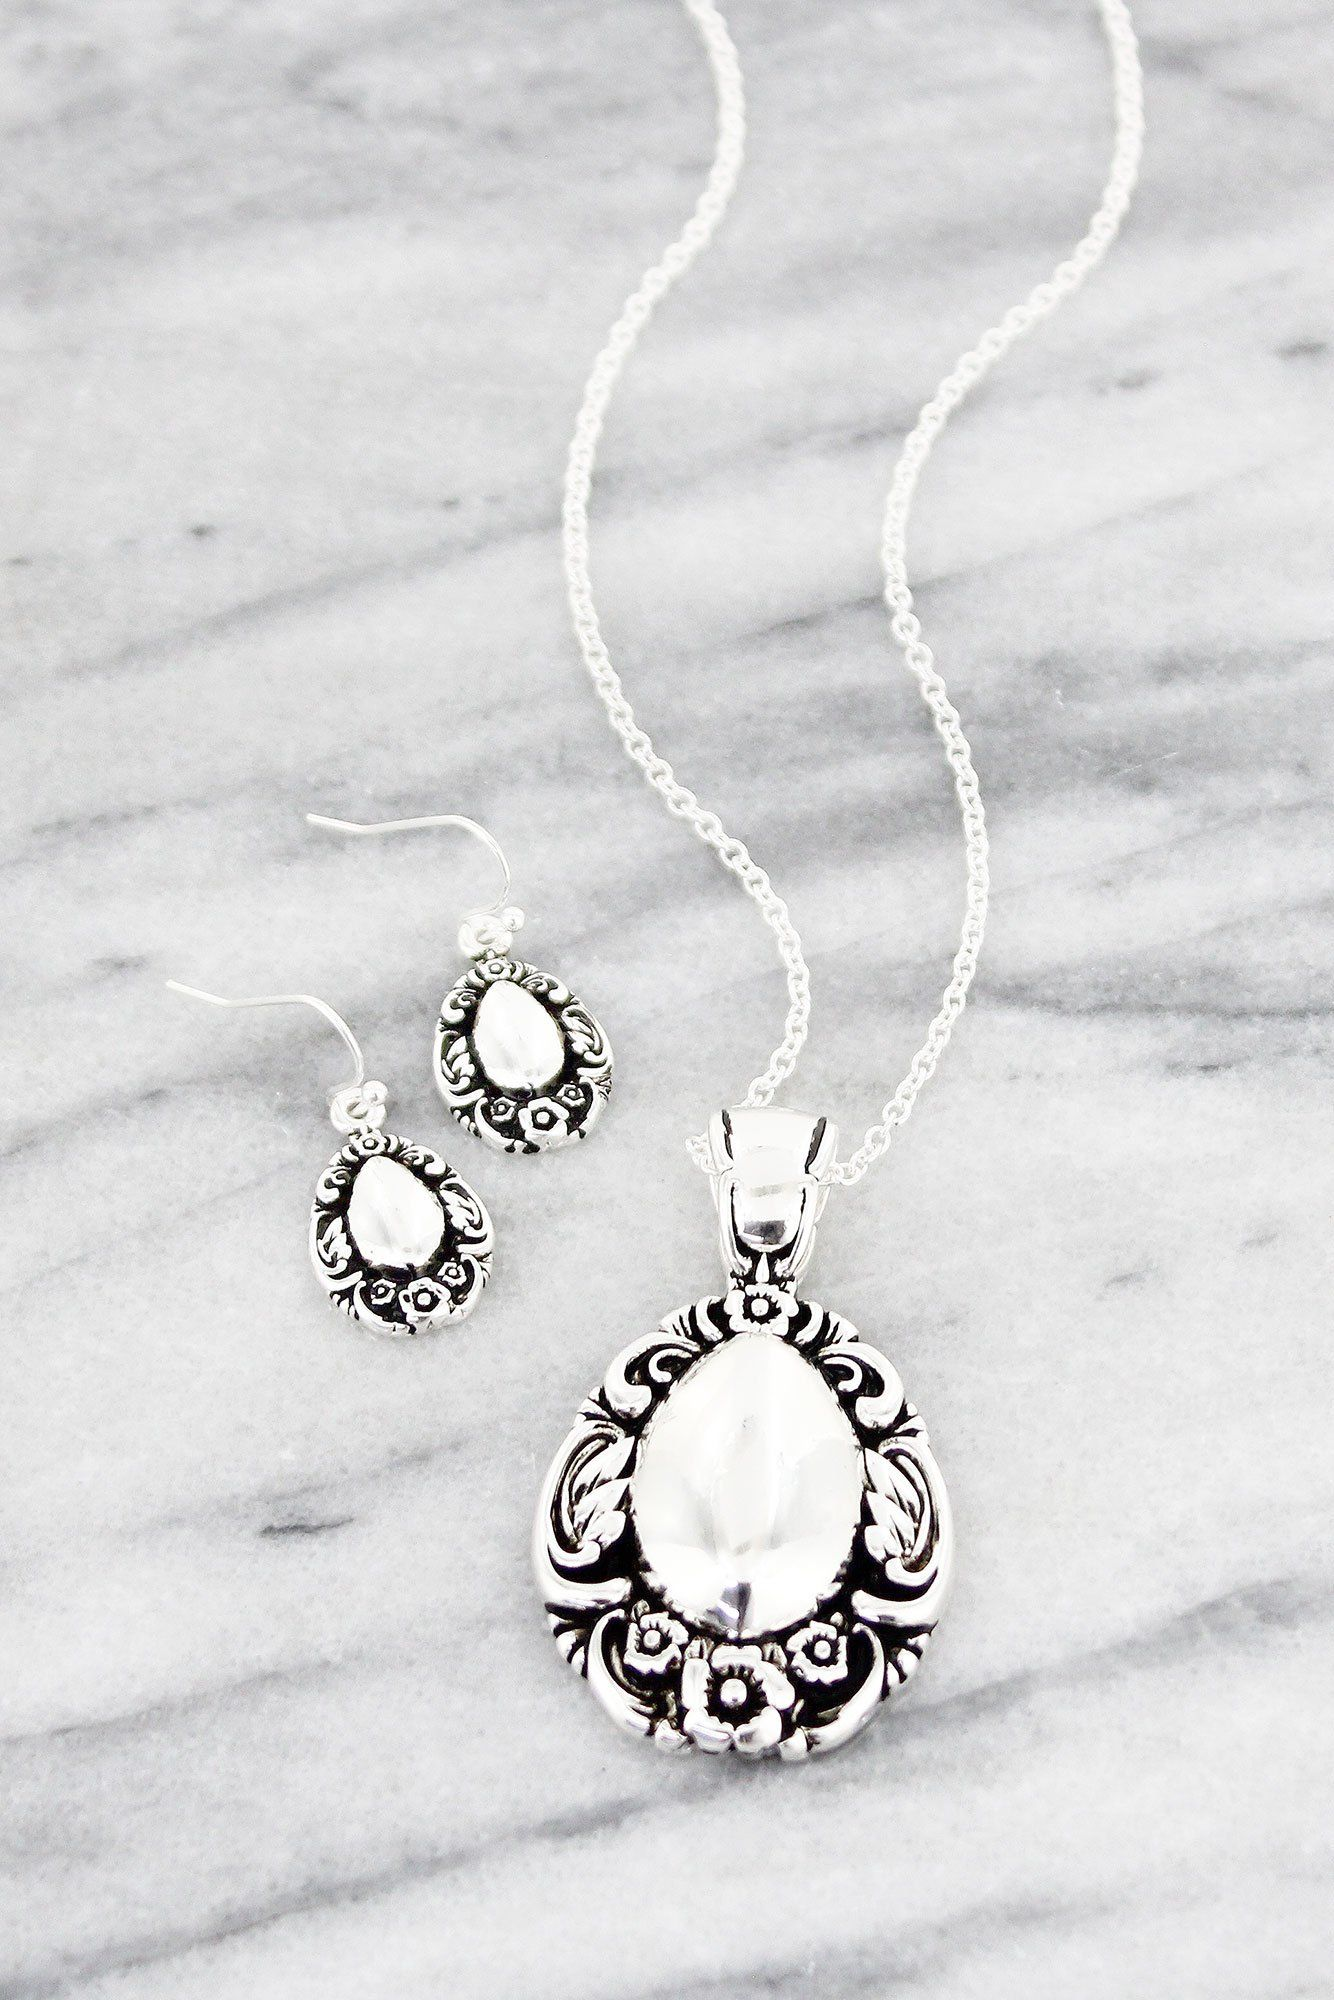 Silvertone oval spoon pendant necklace and earring set products